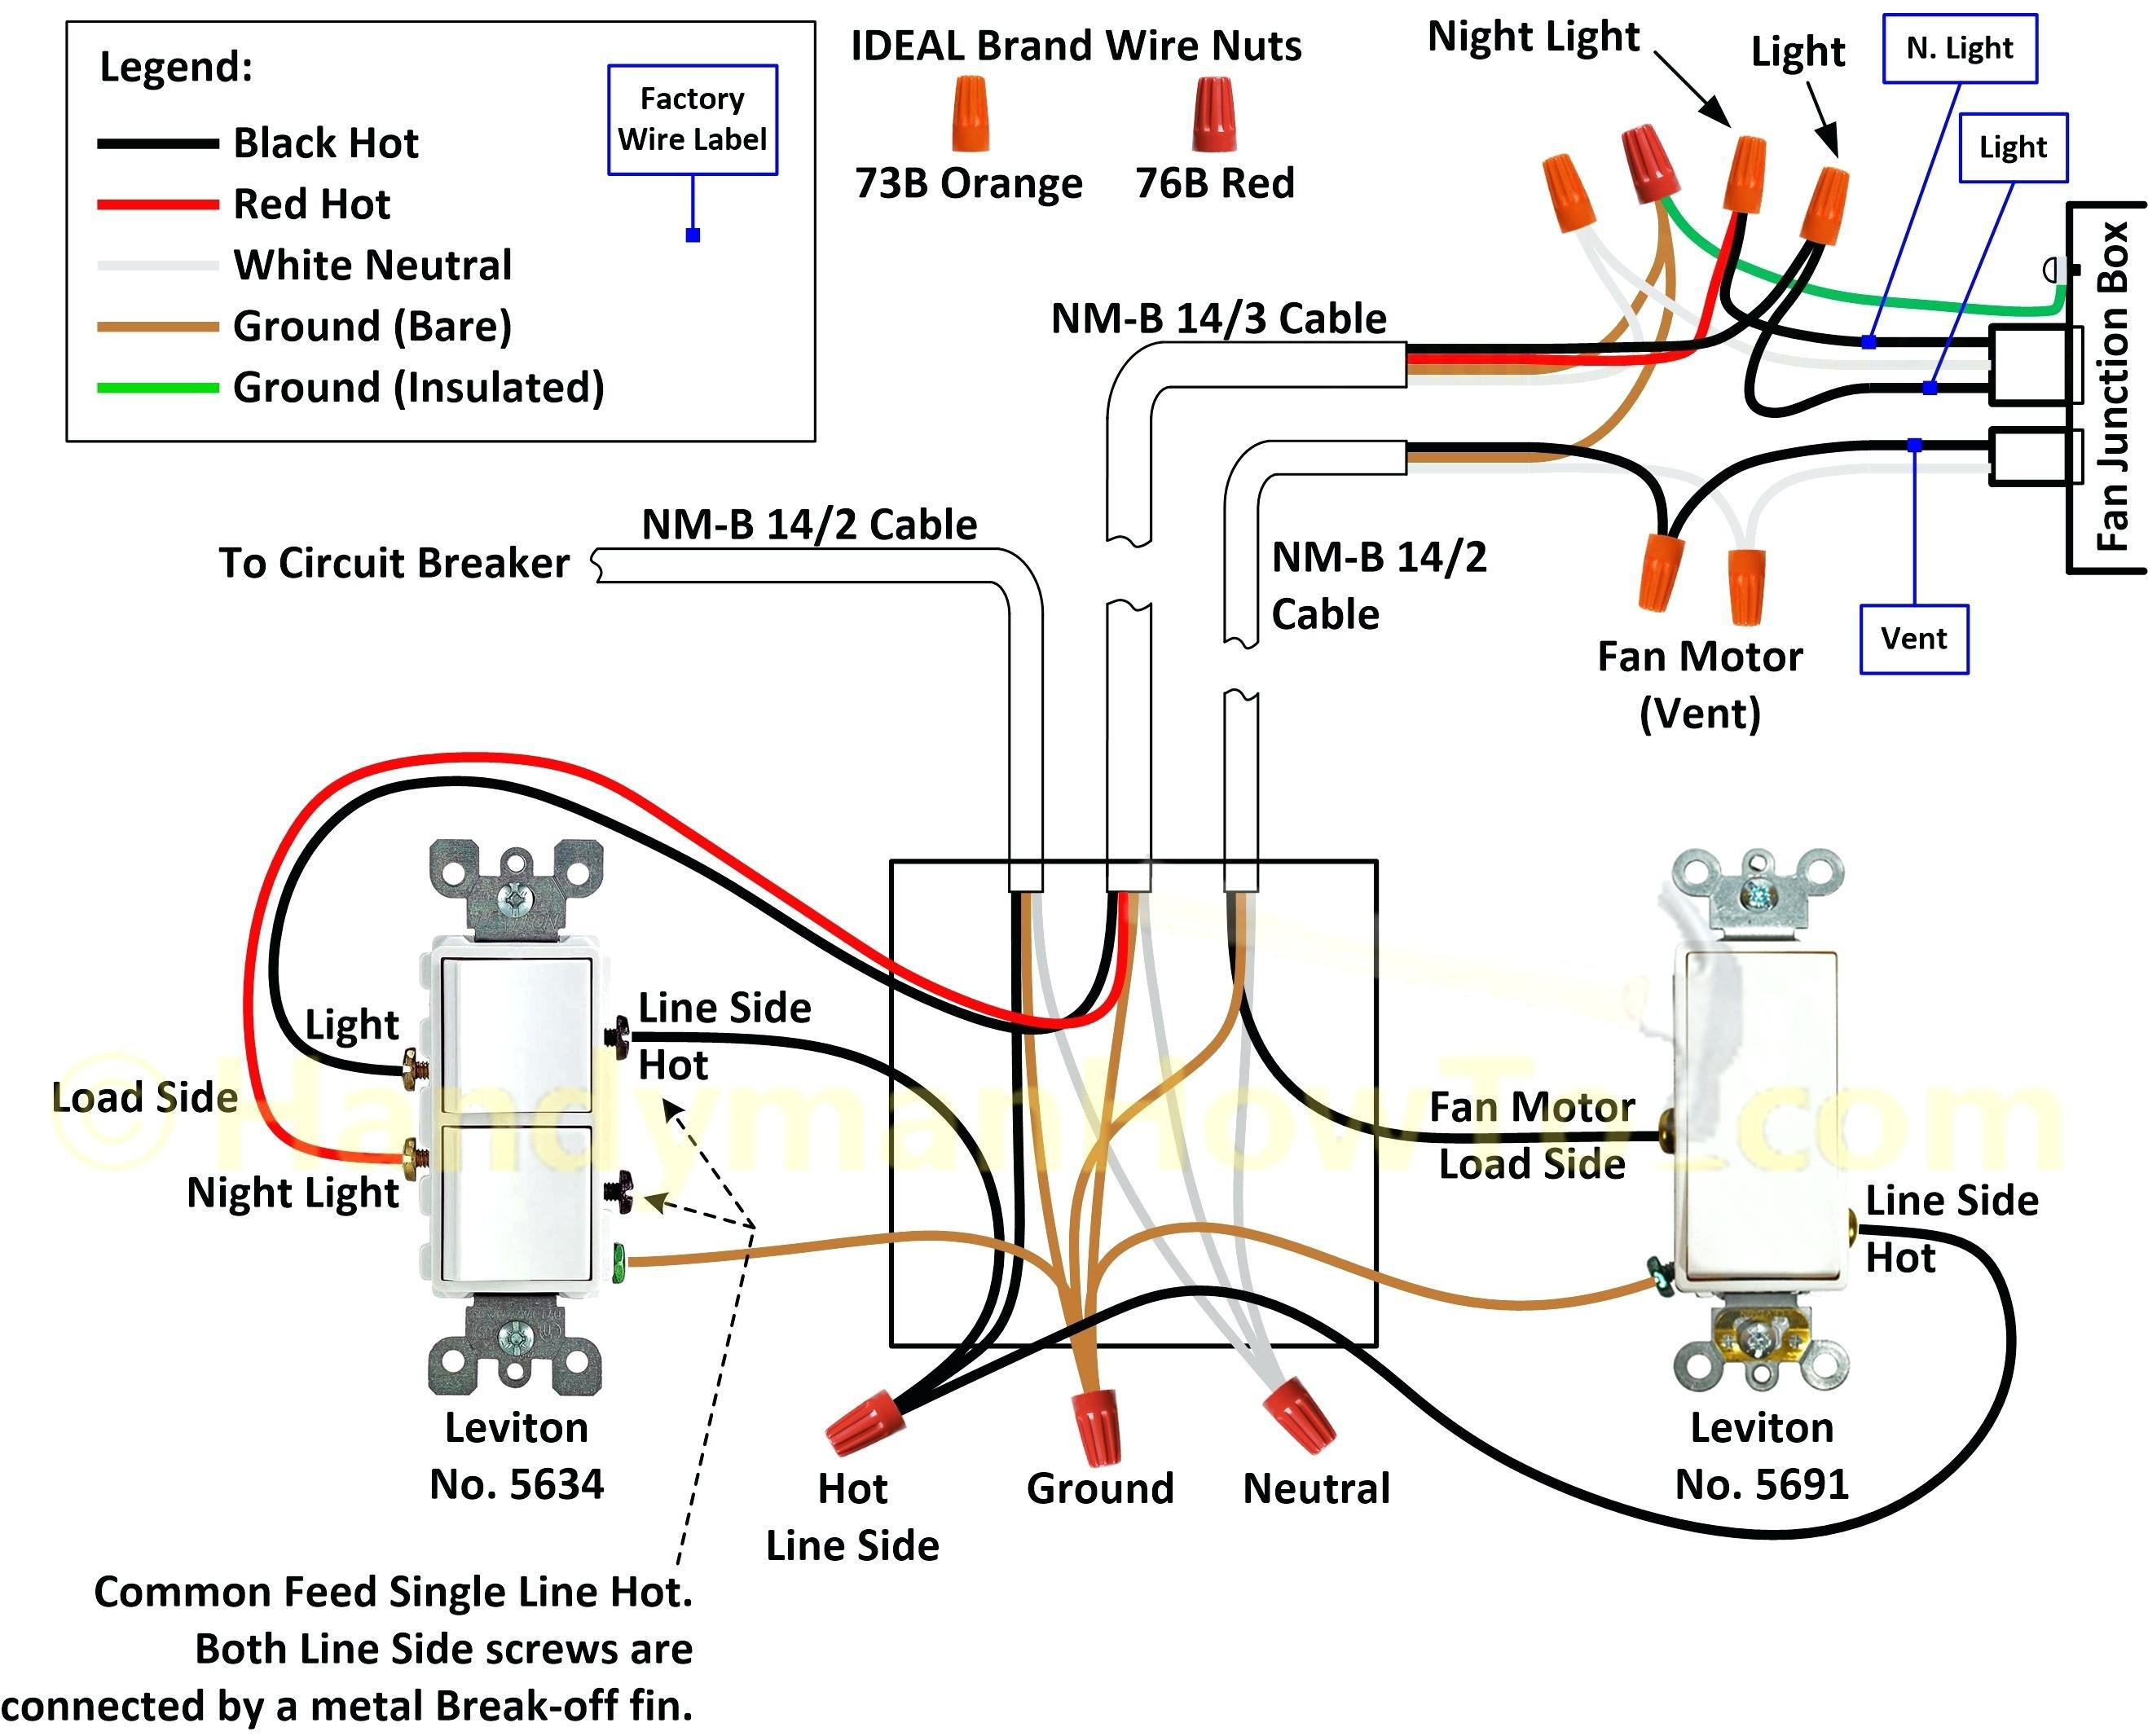 Wiring A Light with Two Switches Elegant 3 Way Dimmer Switch Wiring Diagram Uk Ceiling Fan